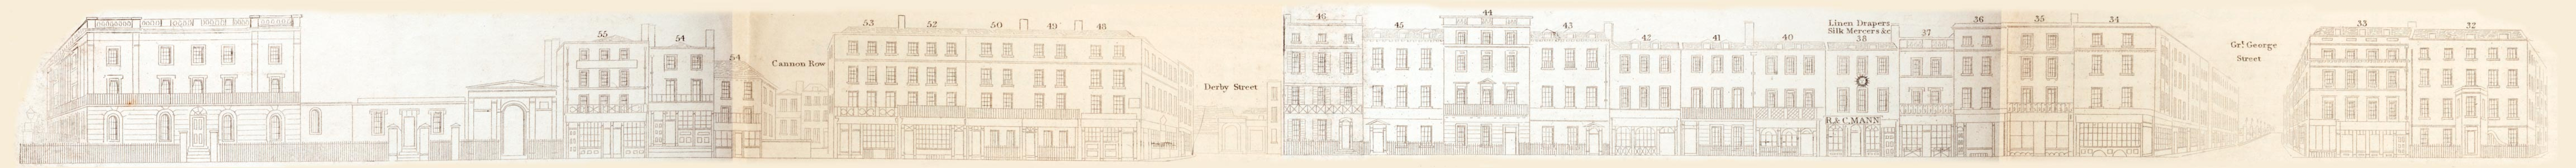 map - Tallis's London street views : No. 73. Parliament Street (east)